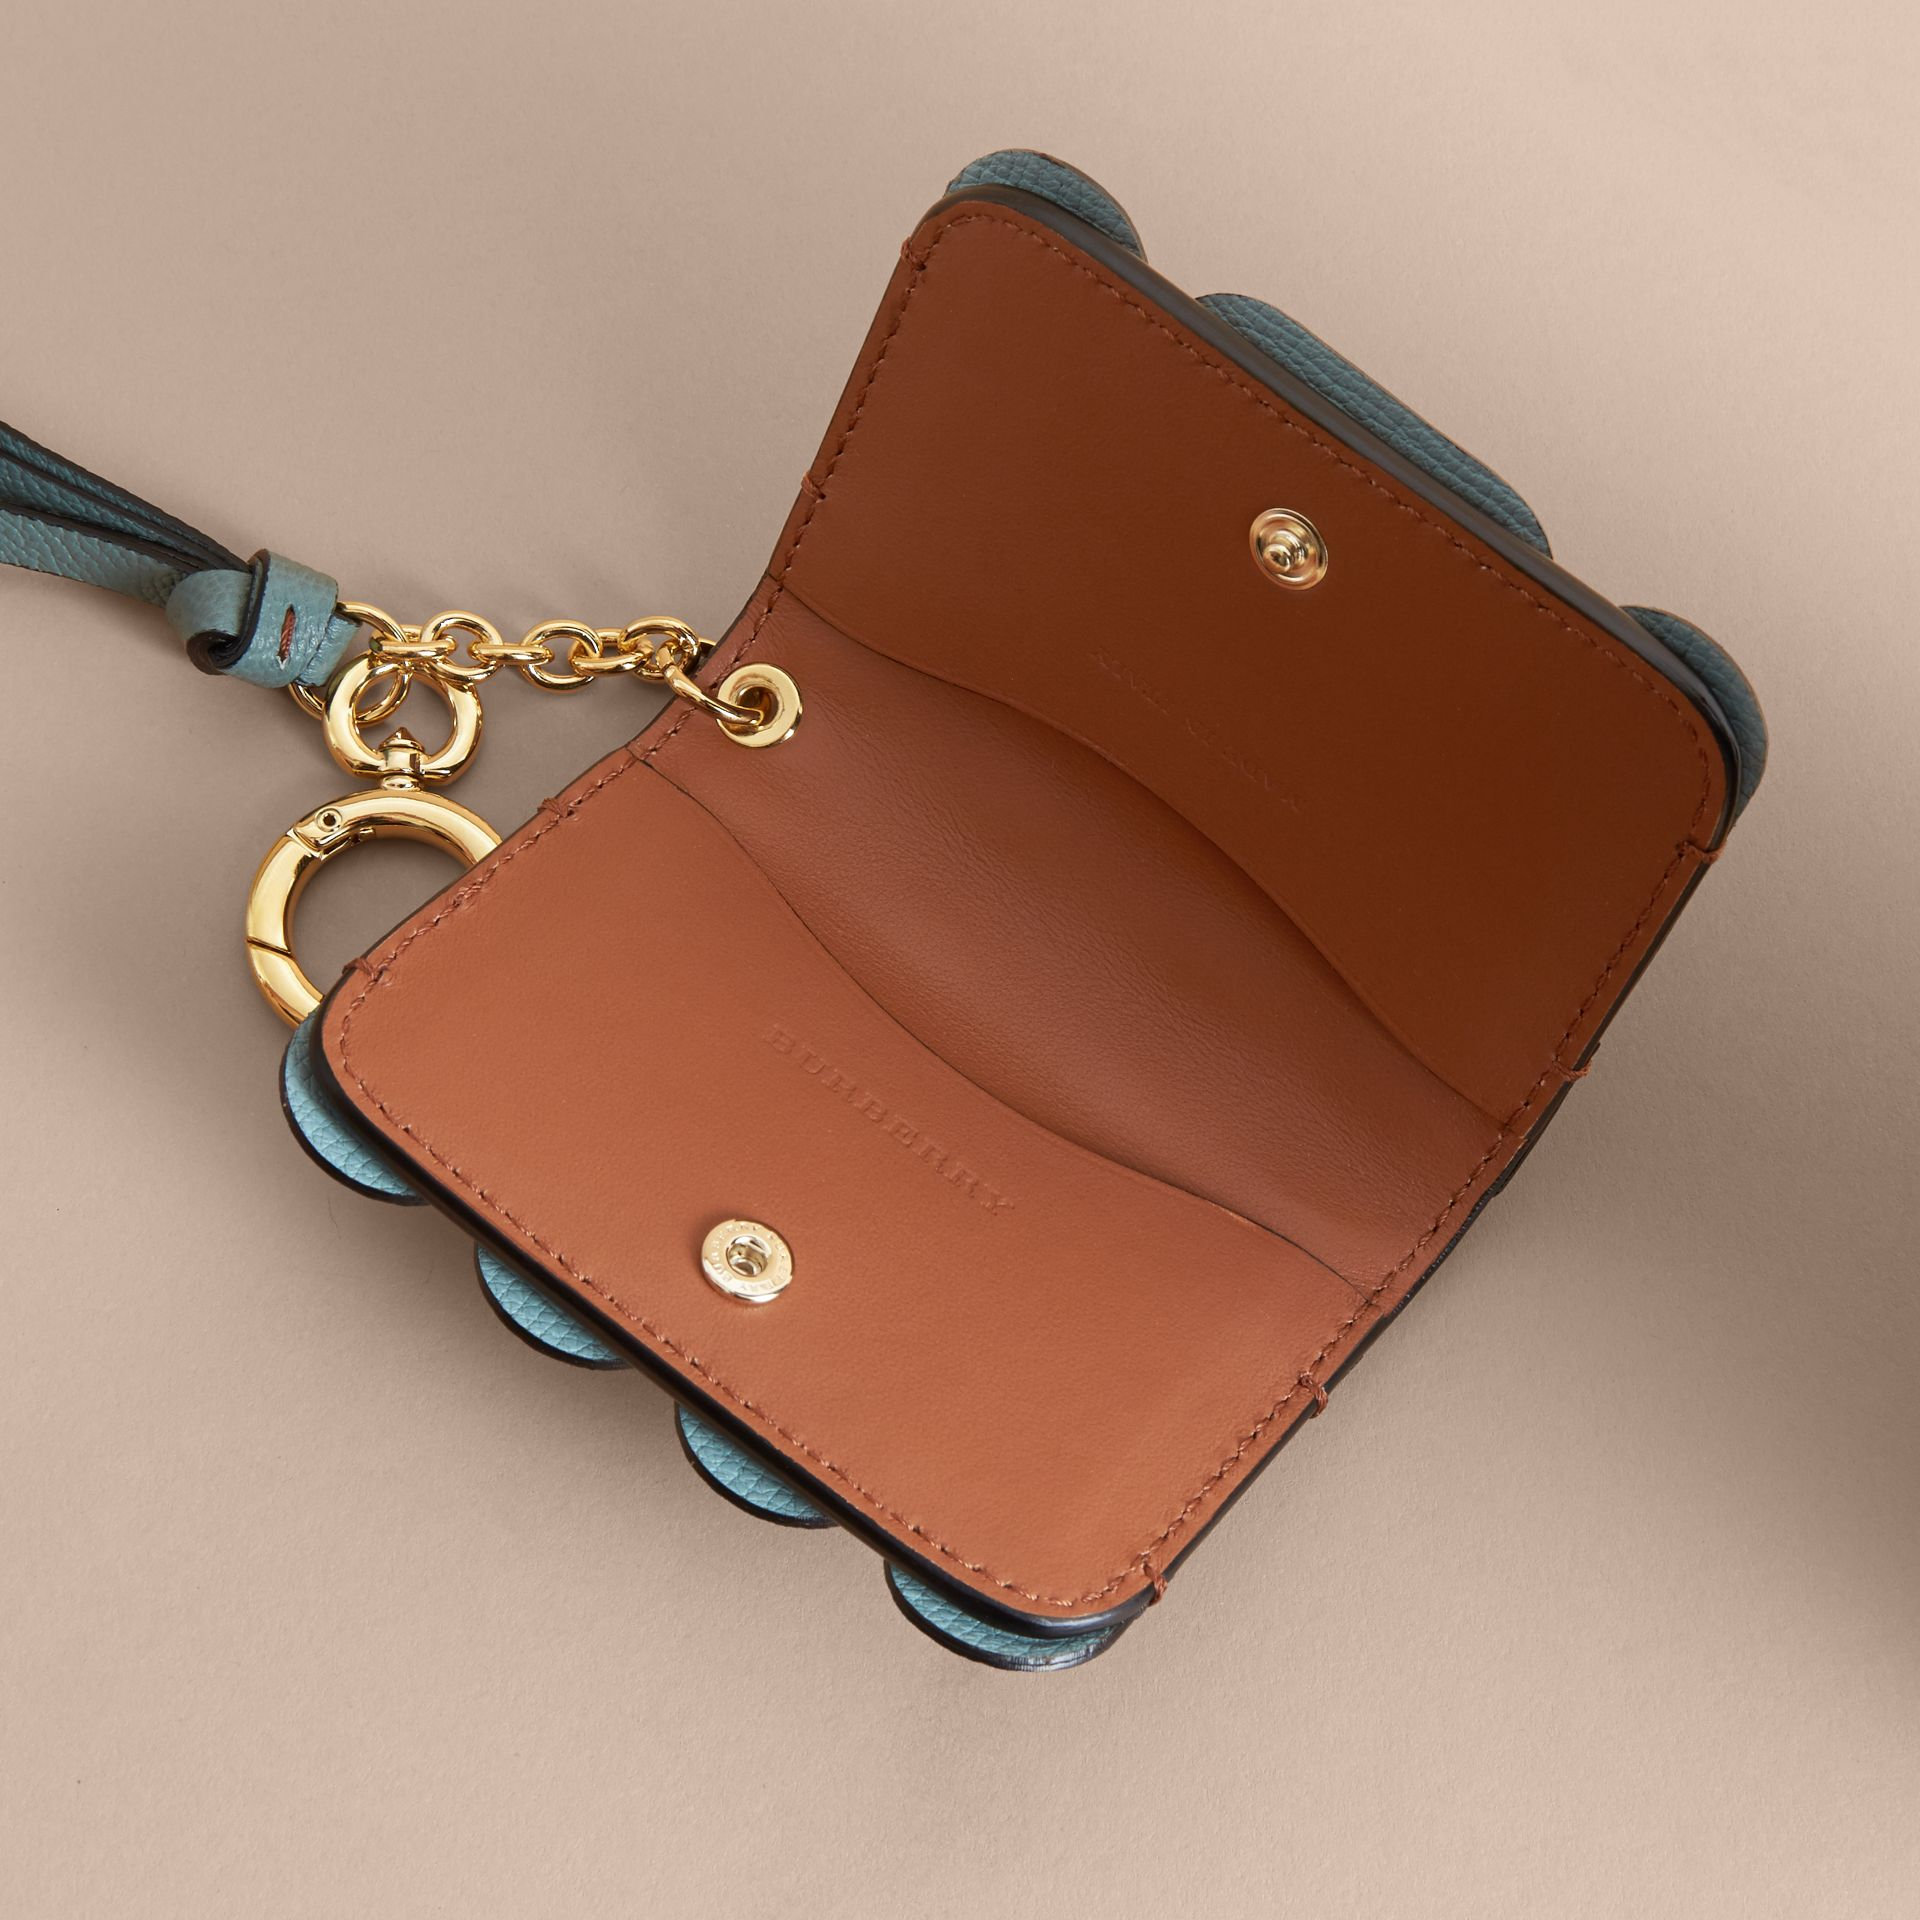 Scalloped Leather Card Case in Bright Toffee - Women | Burberry - gallery image 4